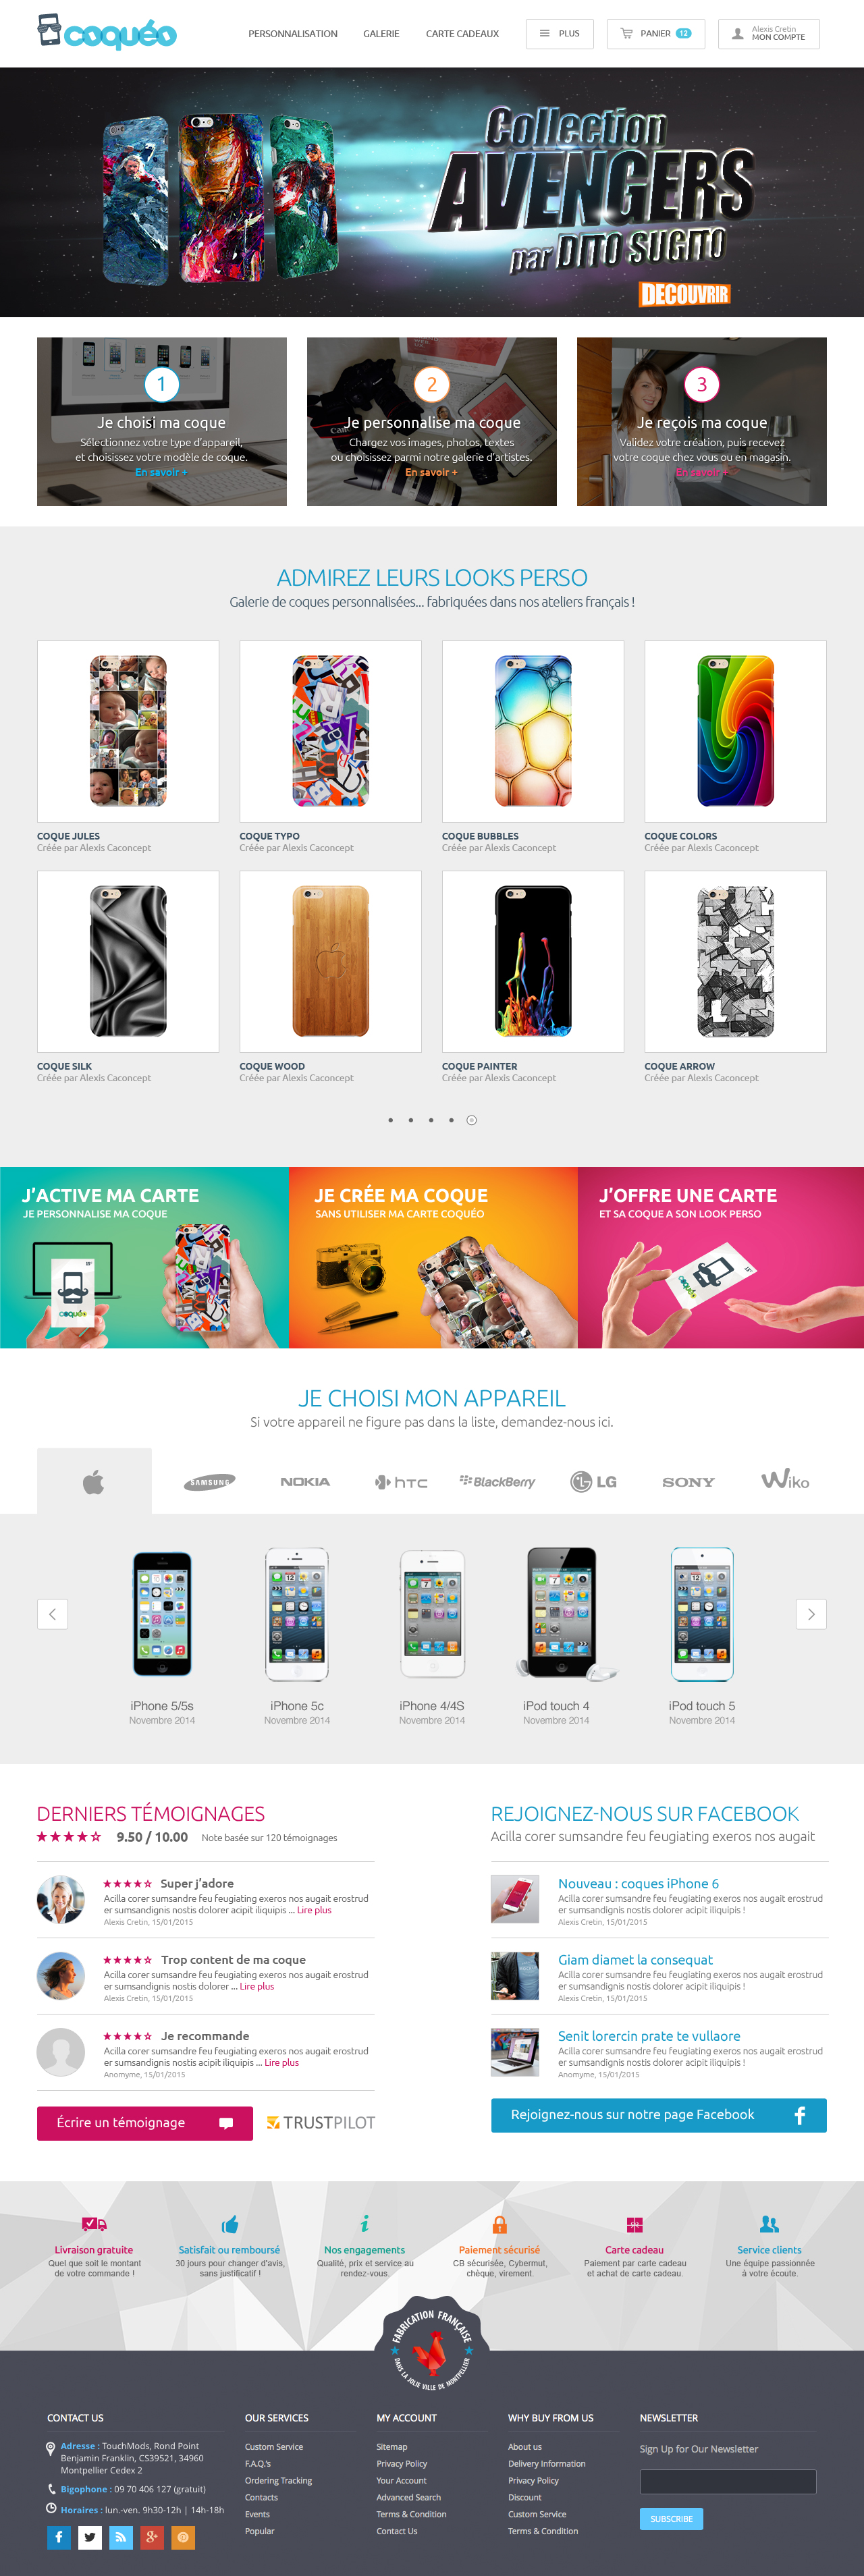 touchmods-design-site-coqueo-personnalisation-coque-mobile-tablette-creation-communication-caconcept-alexis-cretin-graphiste